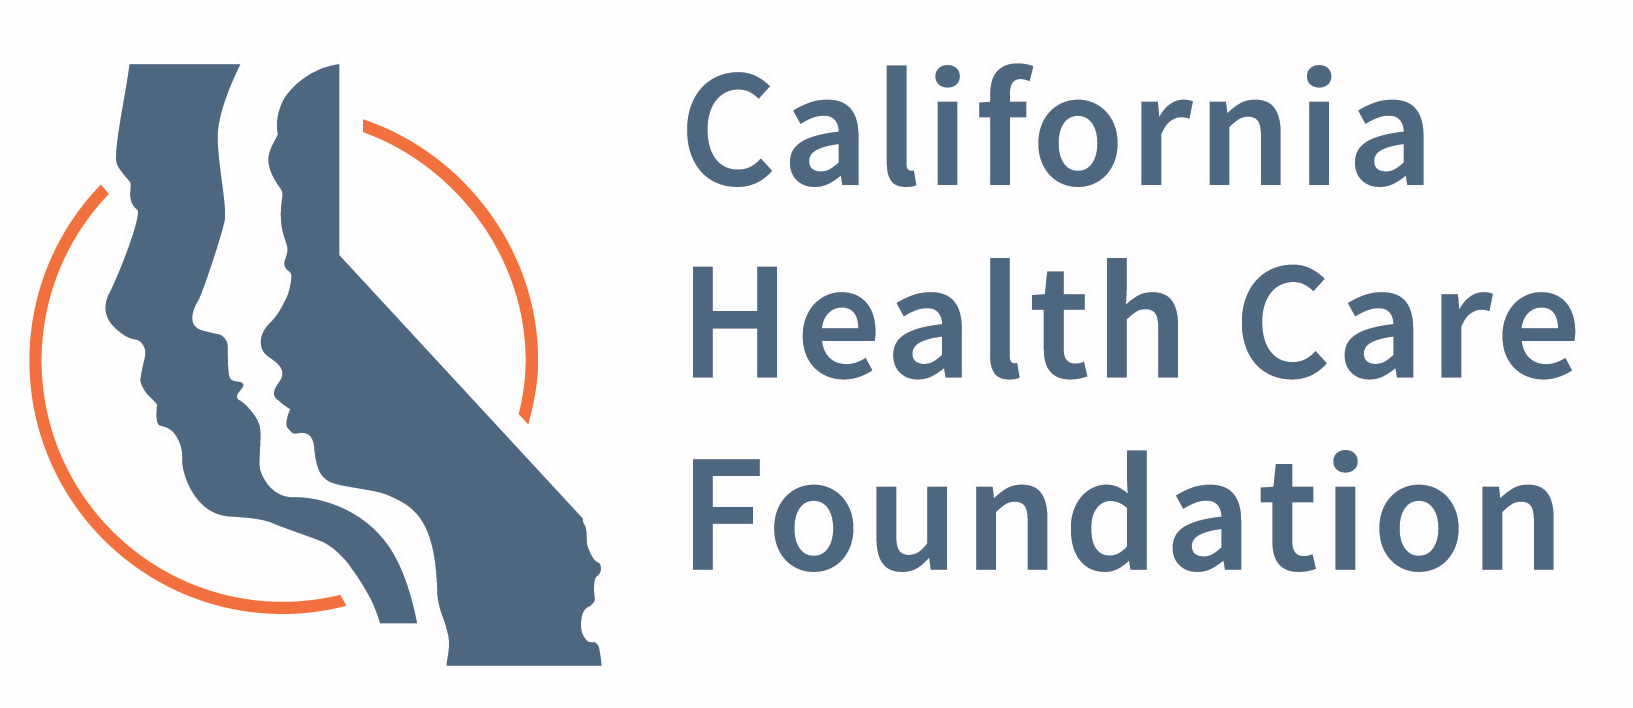 California Health Care Foundation logo